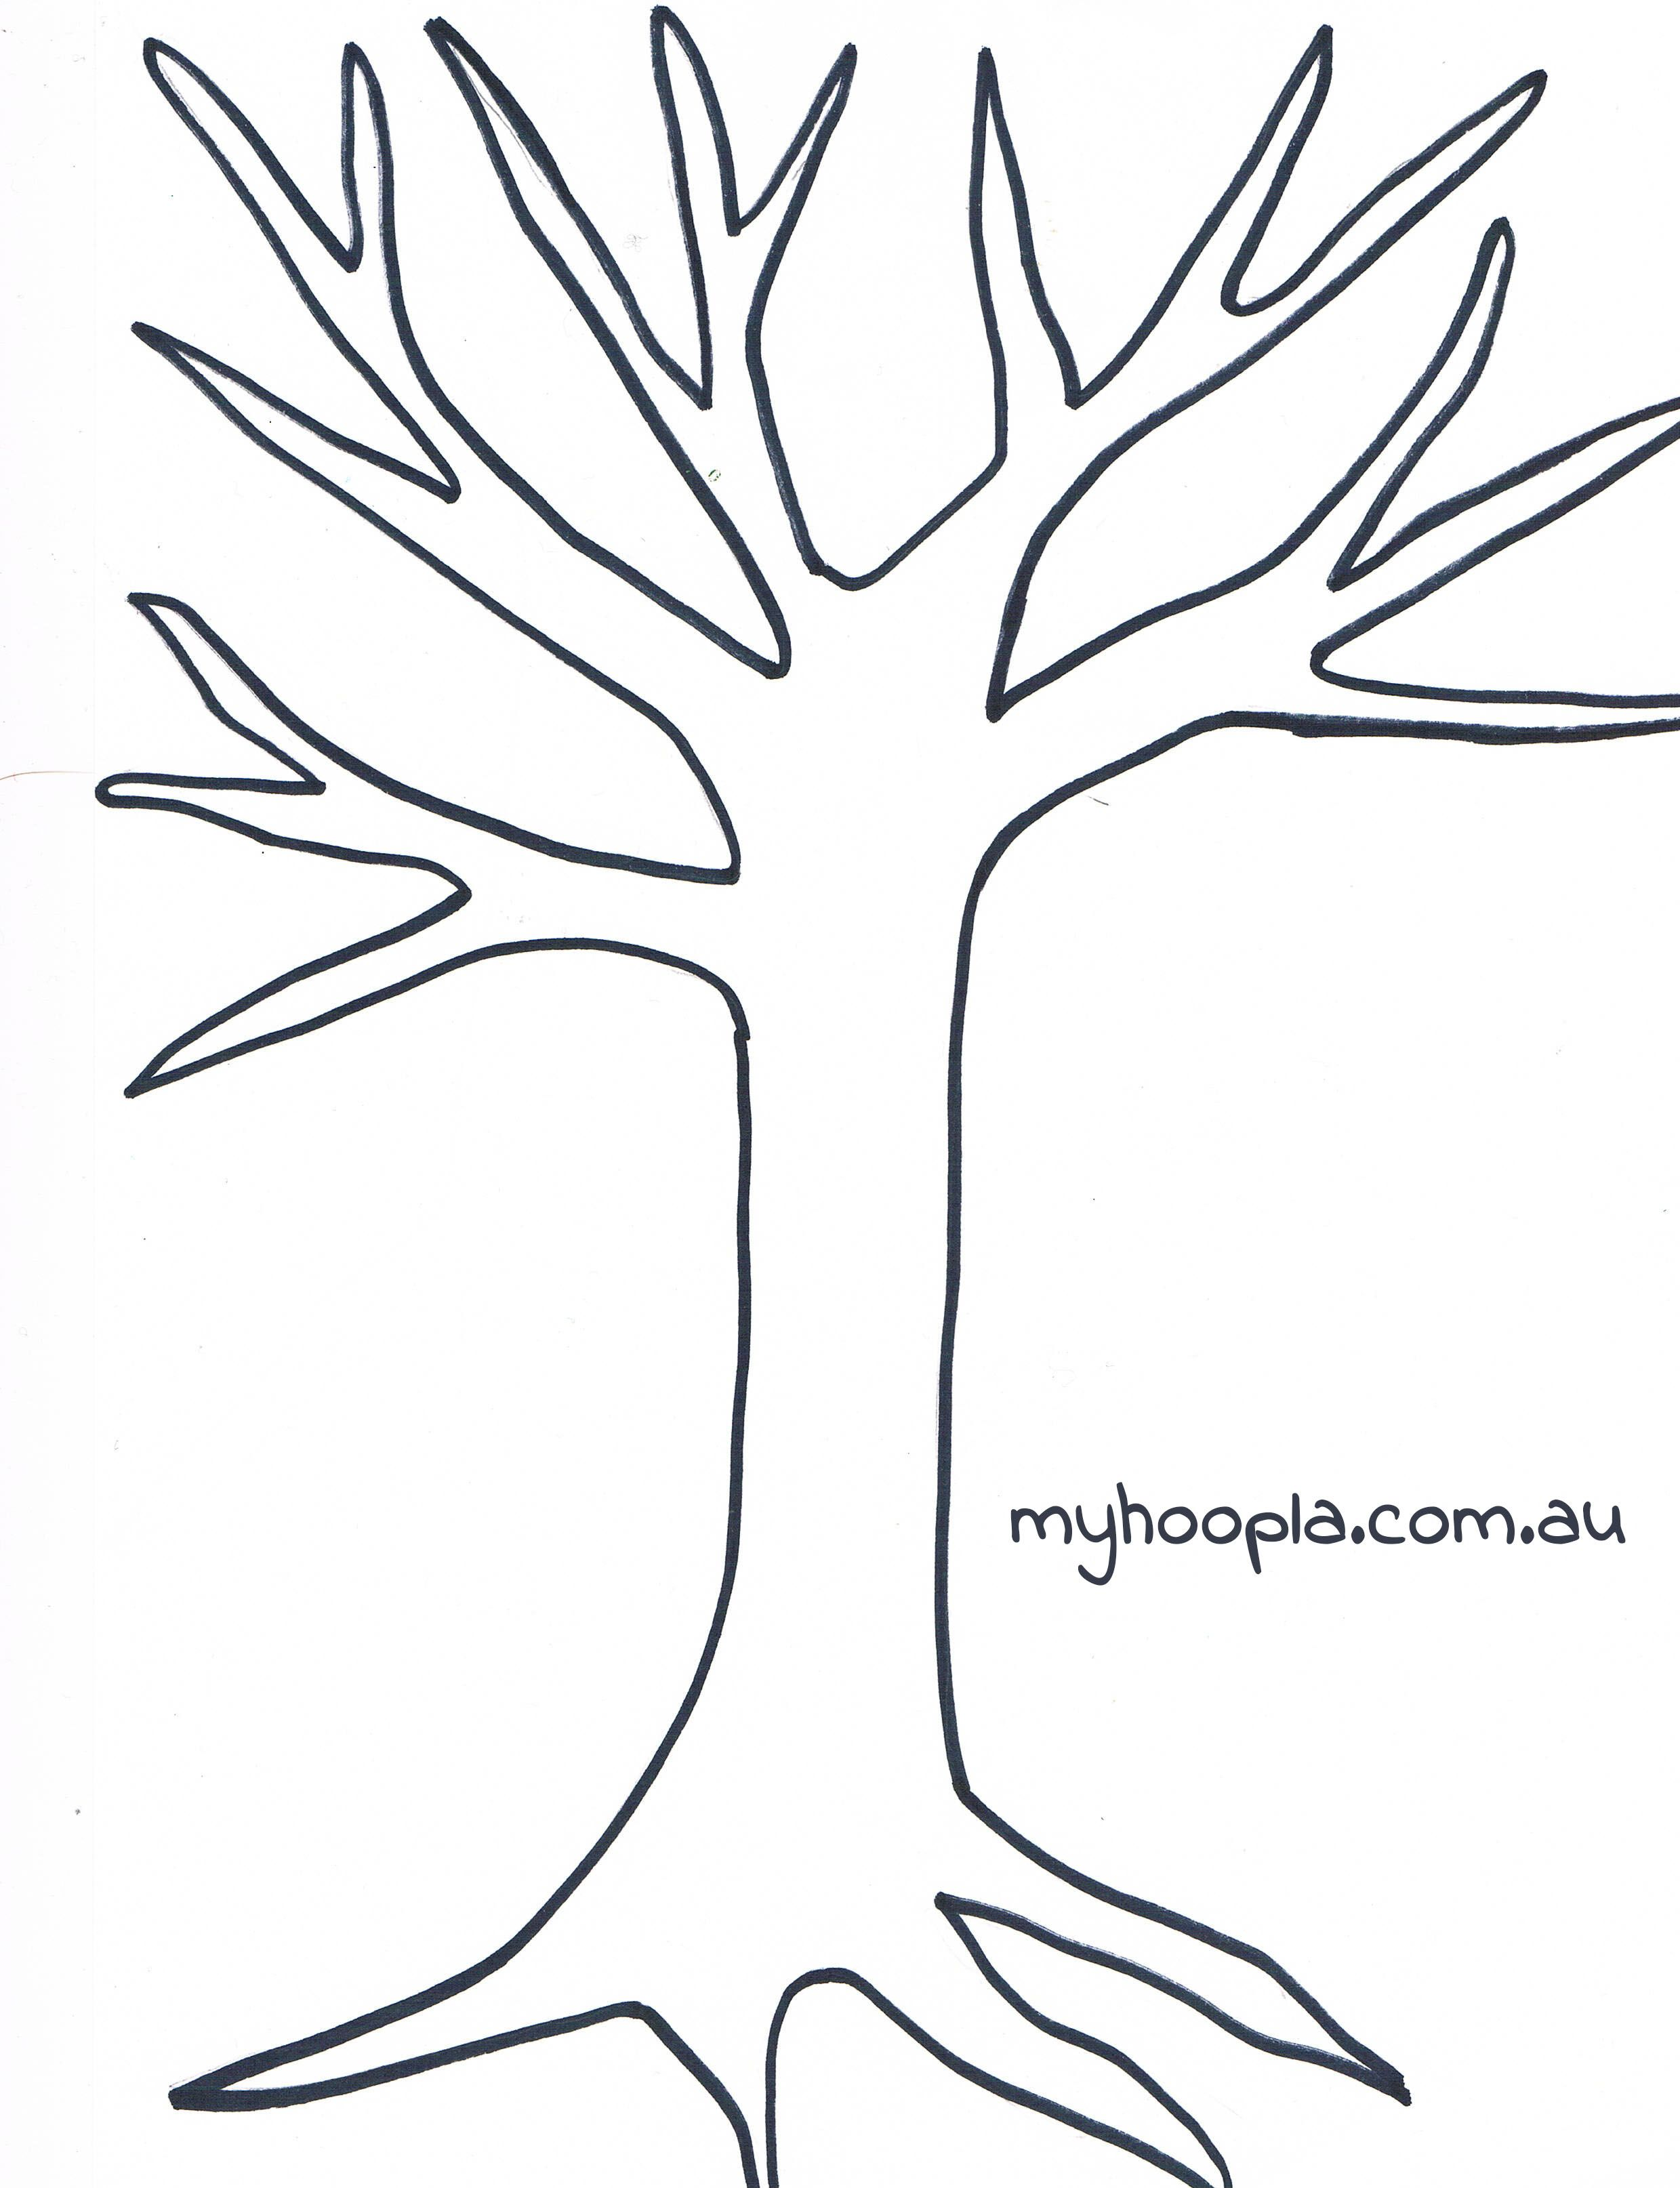 Kandinsky S Trees Myhoopla Tree Coloring Page Tree Templates Button Tree Art